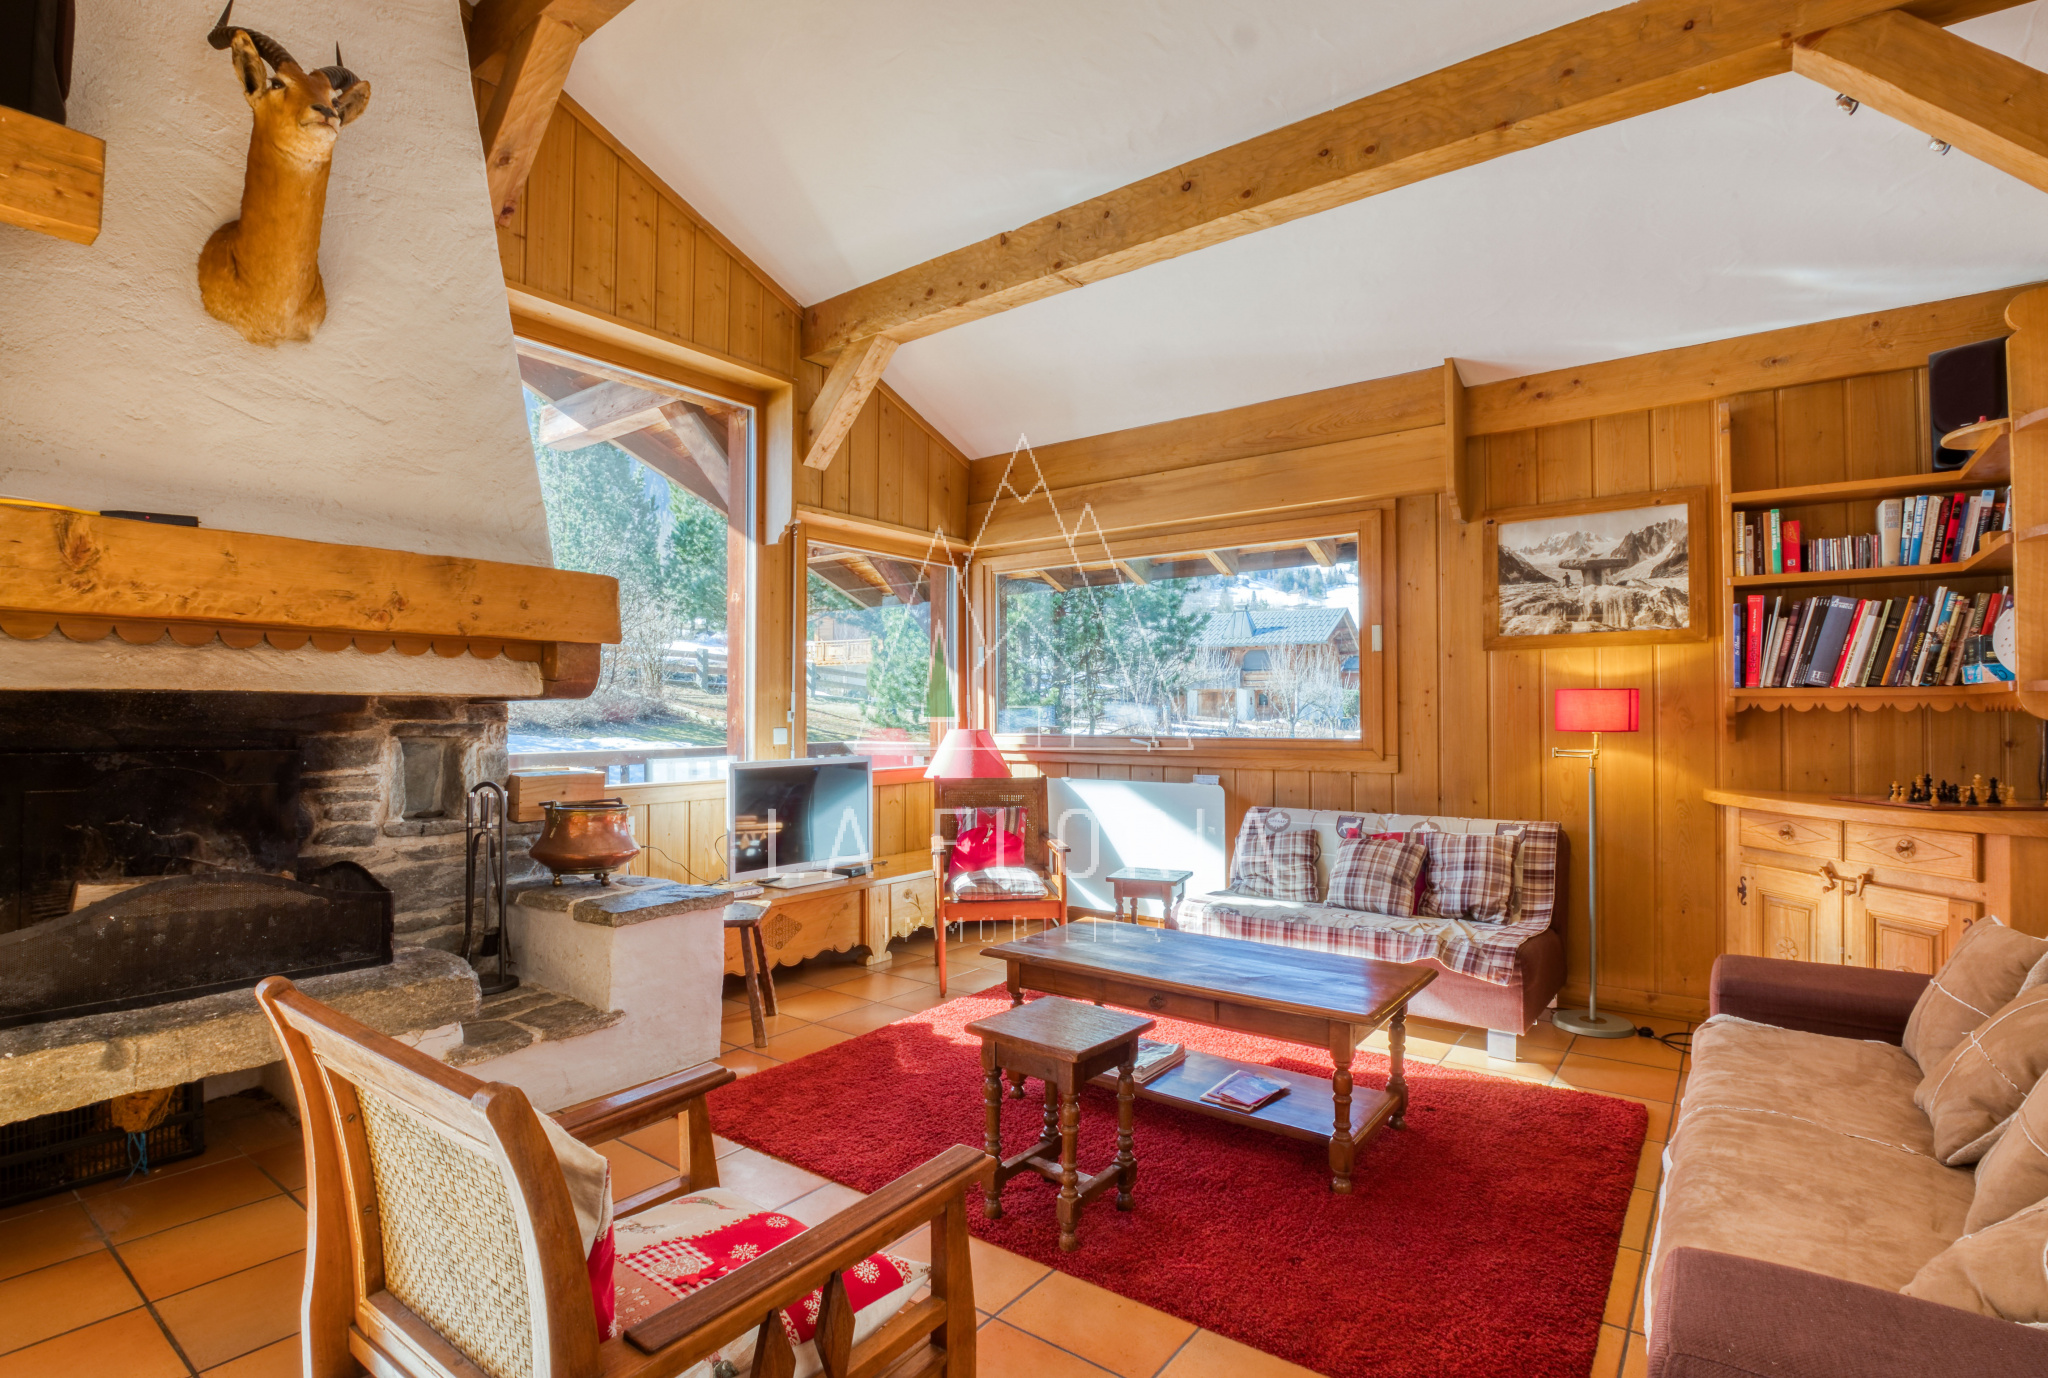 LARGE CAPACITY FAMILY CHALET, LES HOUCHES